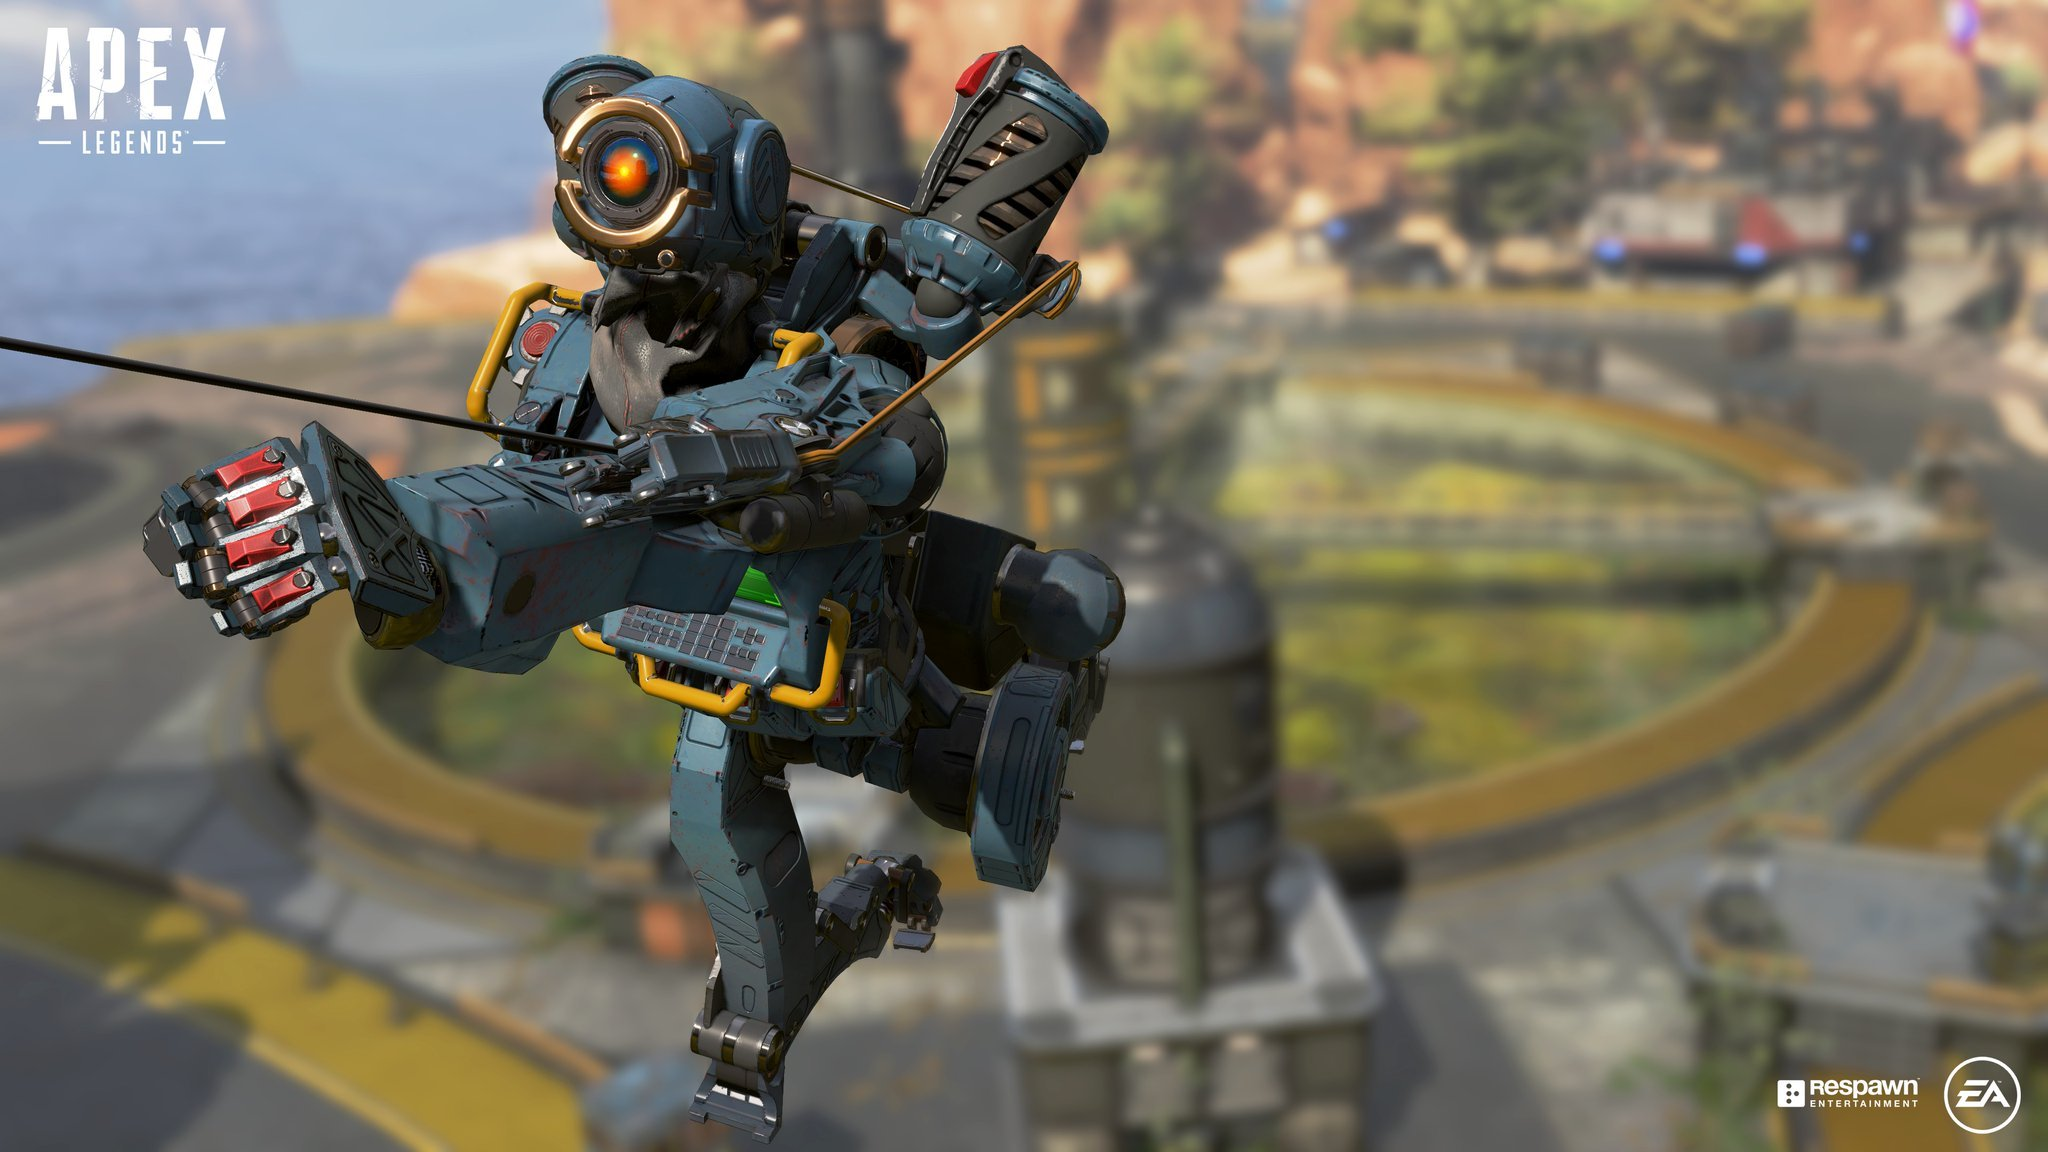 Apex Legends is the new hotness in the battle royale genre.